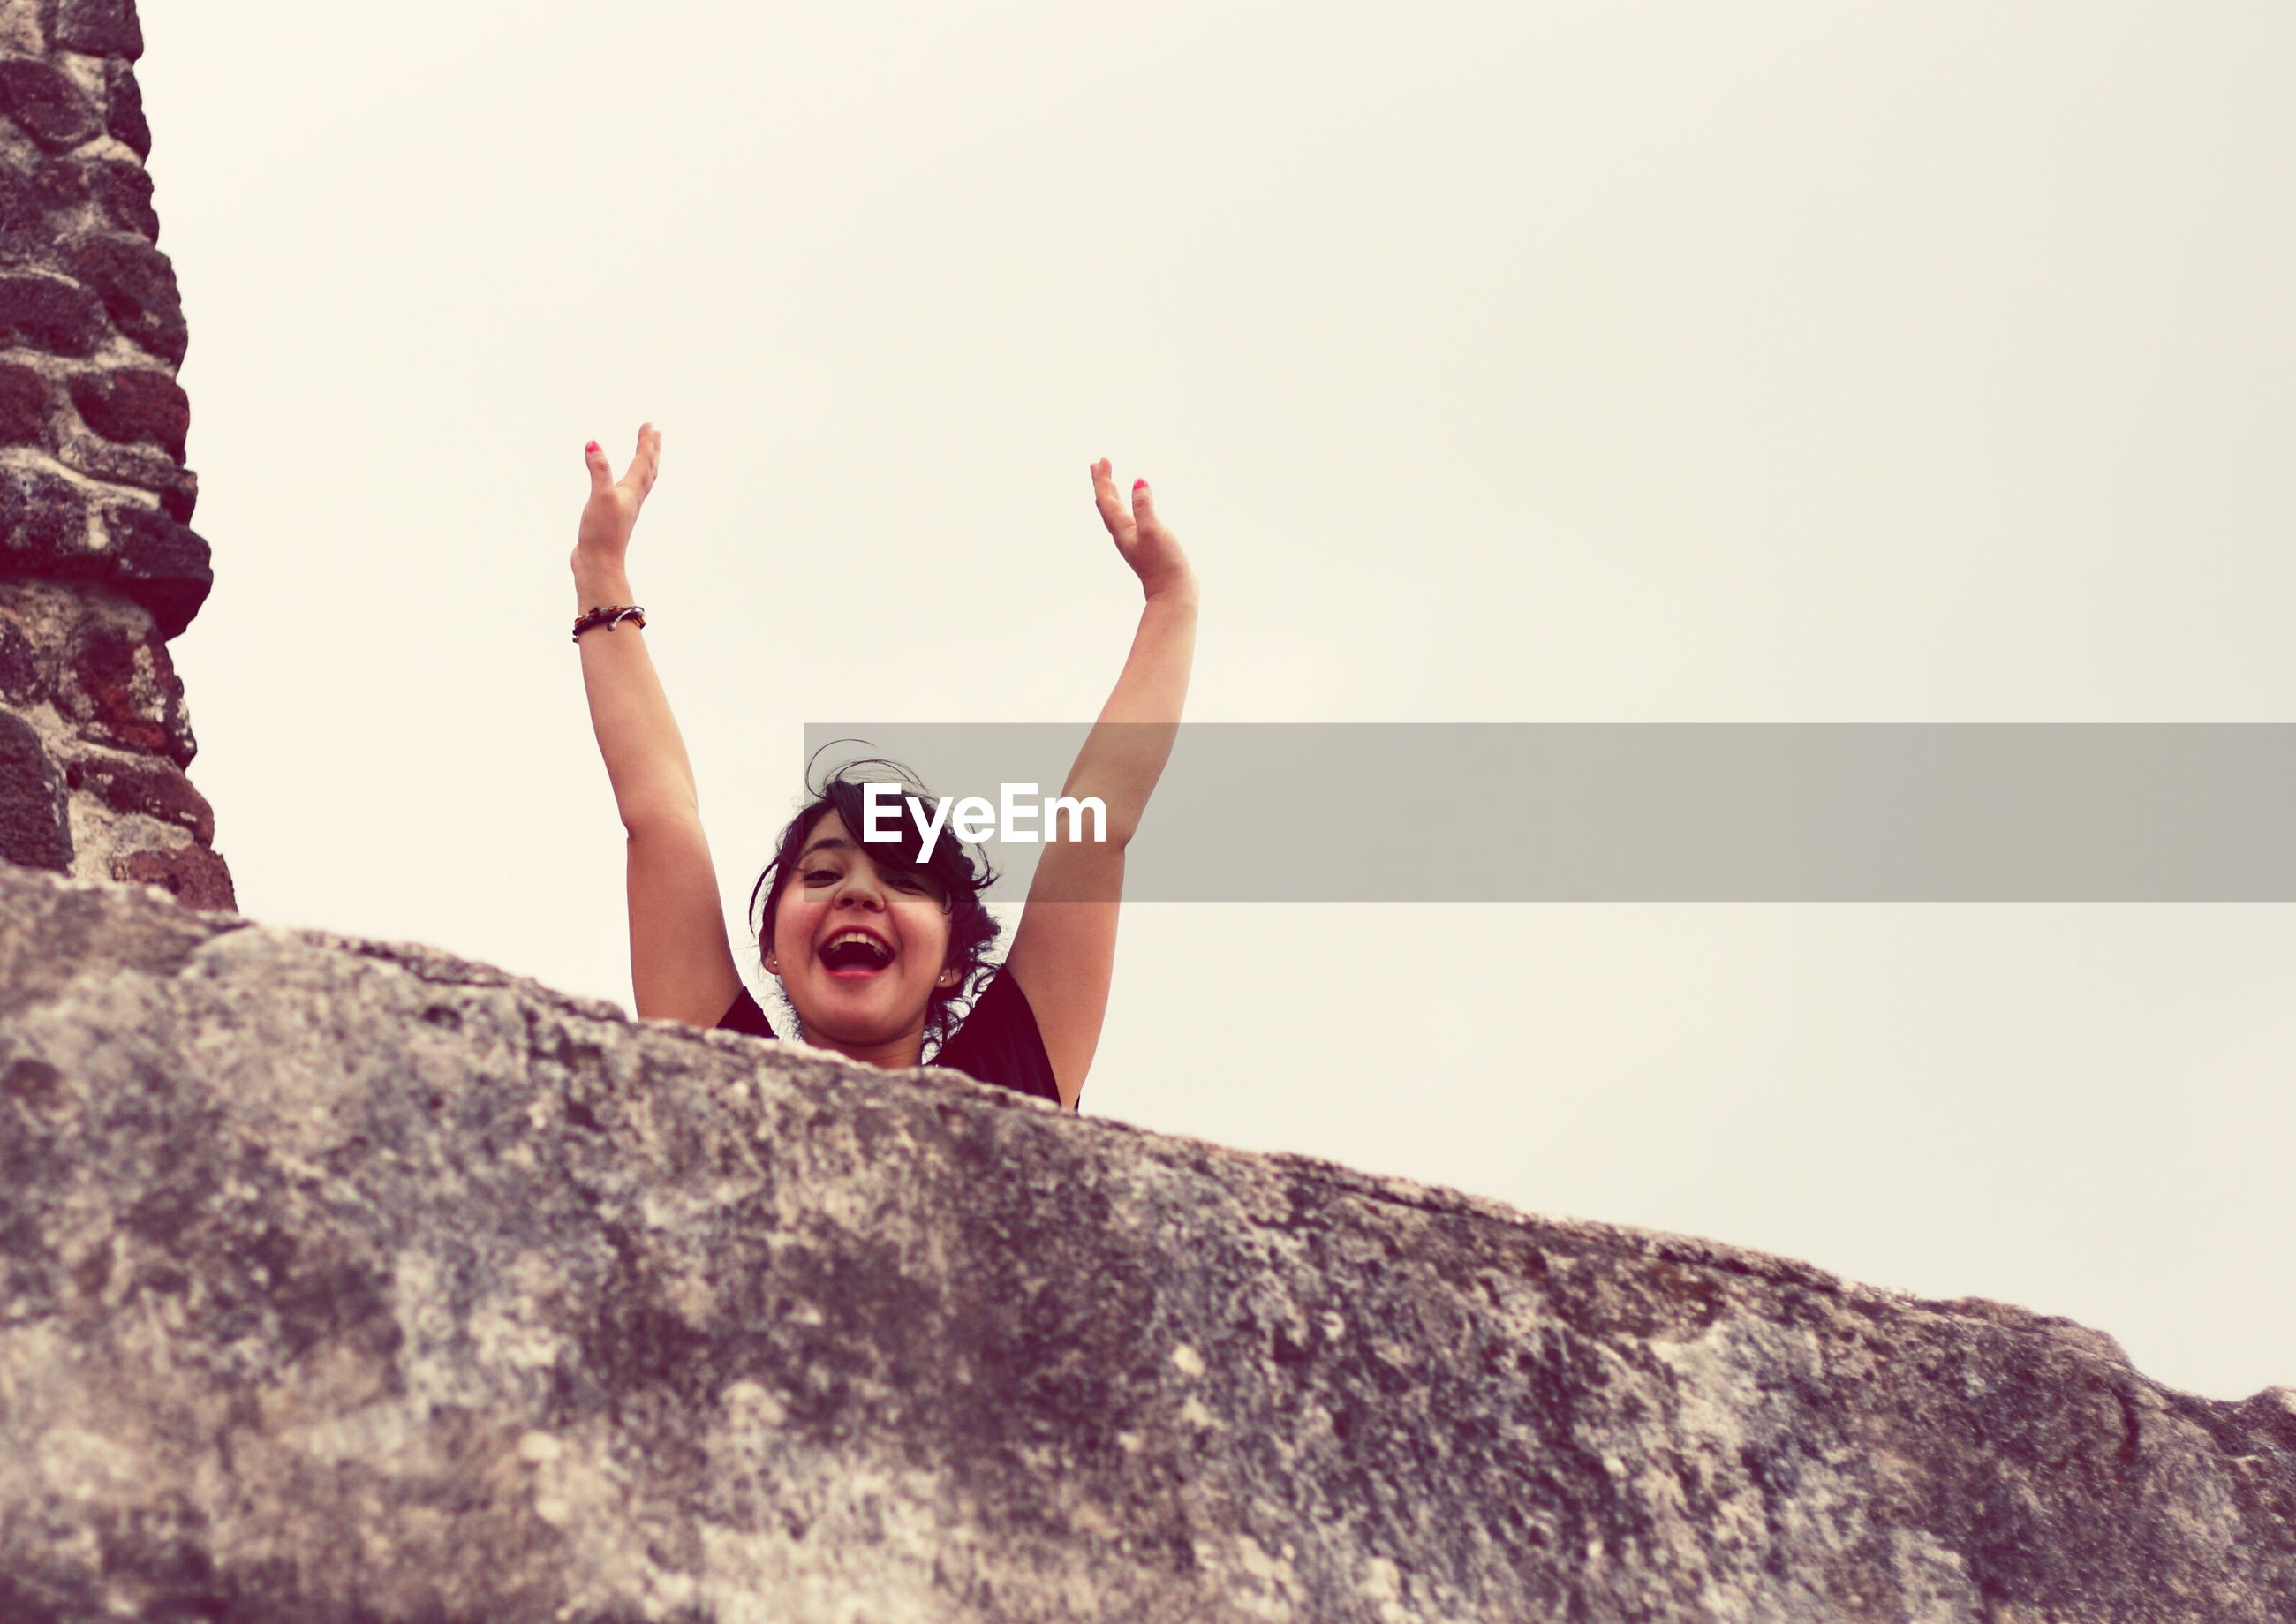 Portrait of smiling woman with arms raised by wall against clear sky